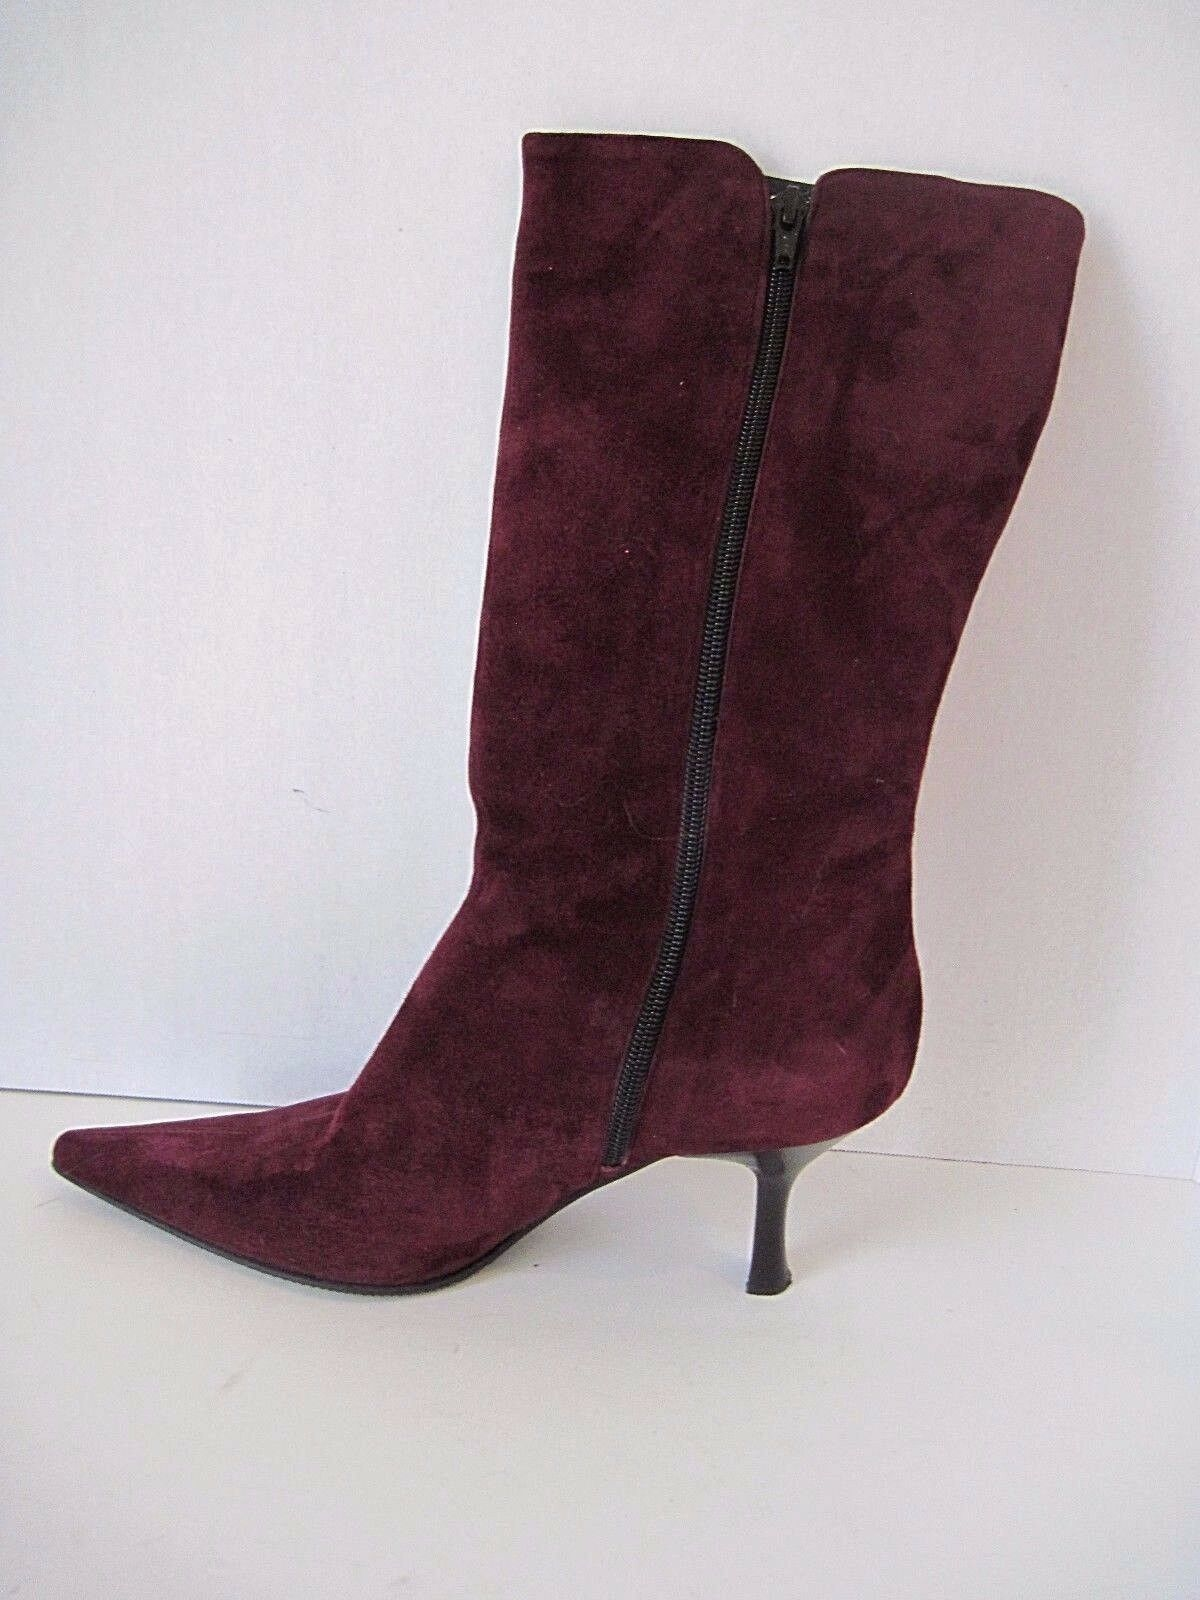 RUSSELL & BROMLEY LONDON PURPLE SUEDE BOOTS SIZE ZIP SIZE 39 ITALY